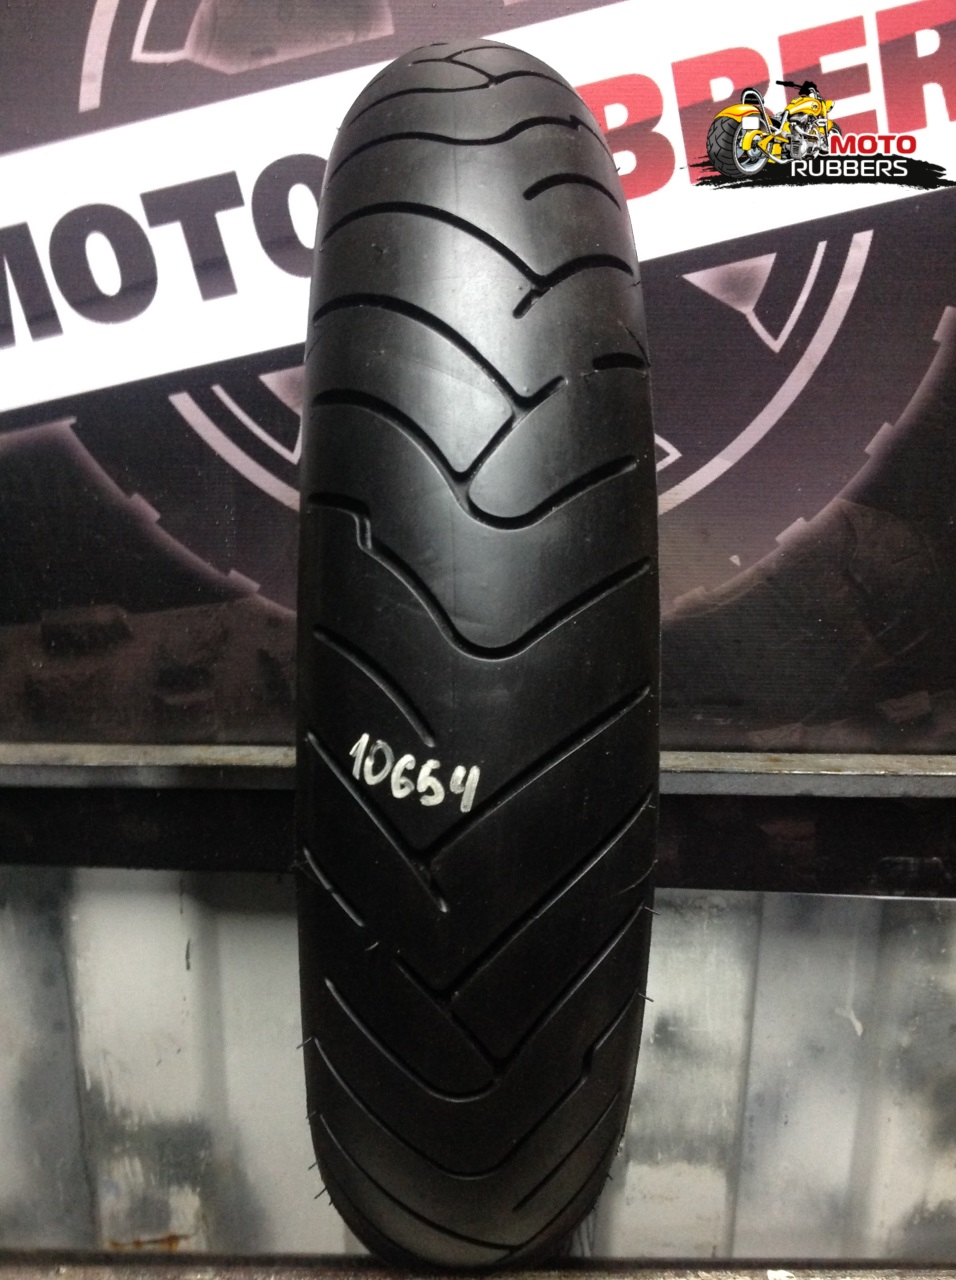 120/70 R17 Bridgestone bt-023